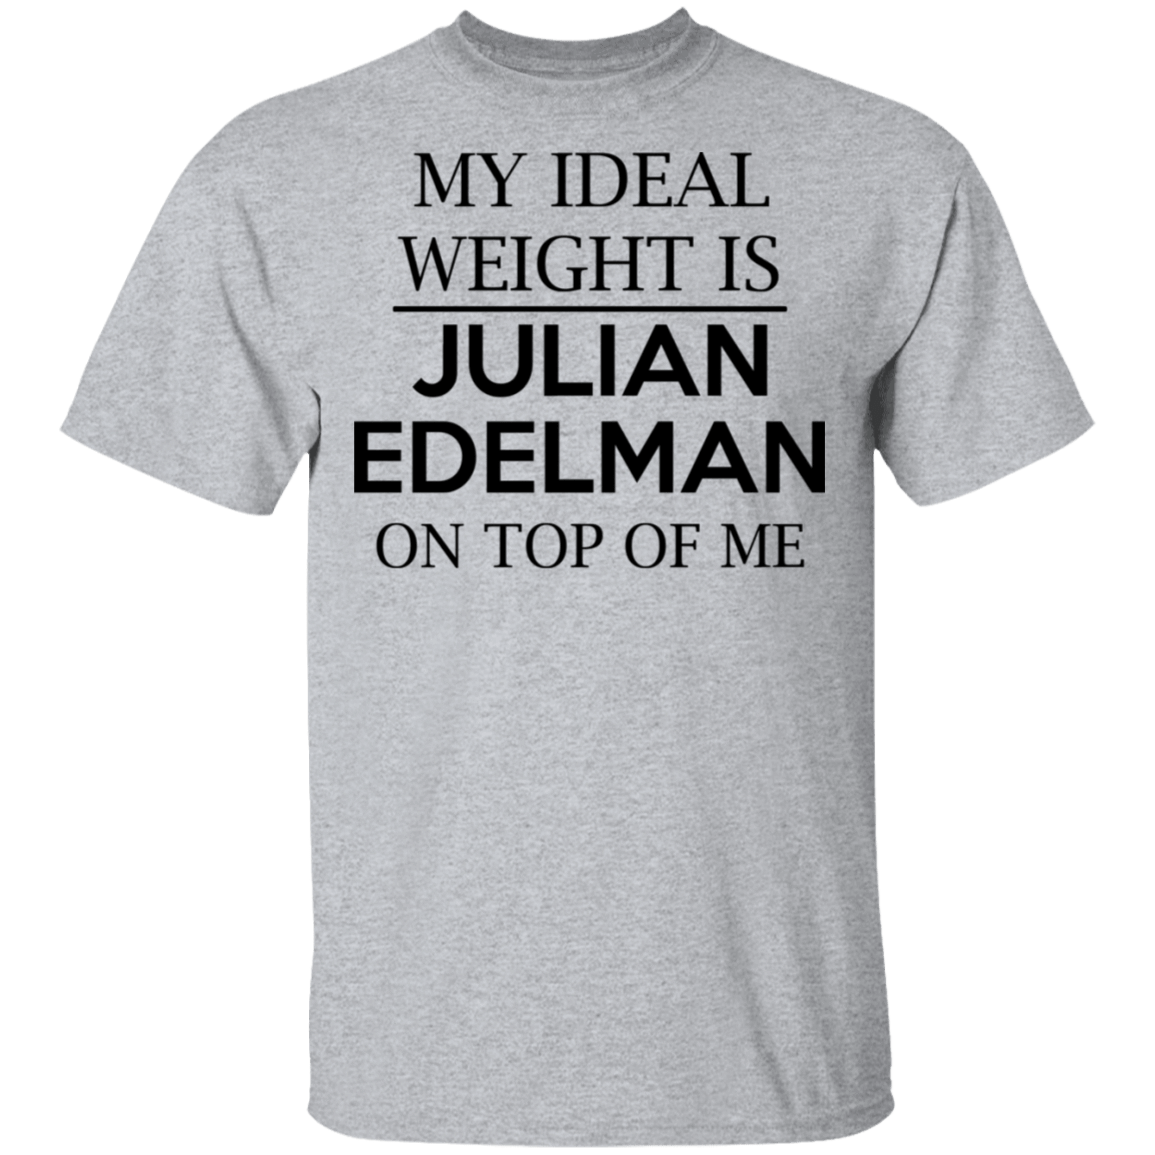 My Ideal Weight Is Julian Edelman On Top Of Me T-Shirts, Hoodies, Tank 22-115-79345116-254 - Tee Ript